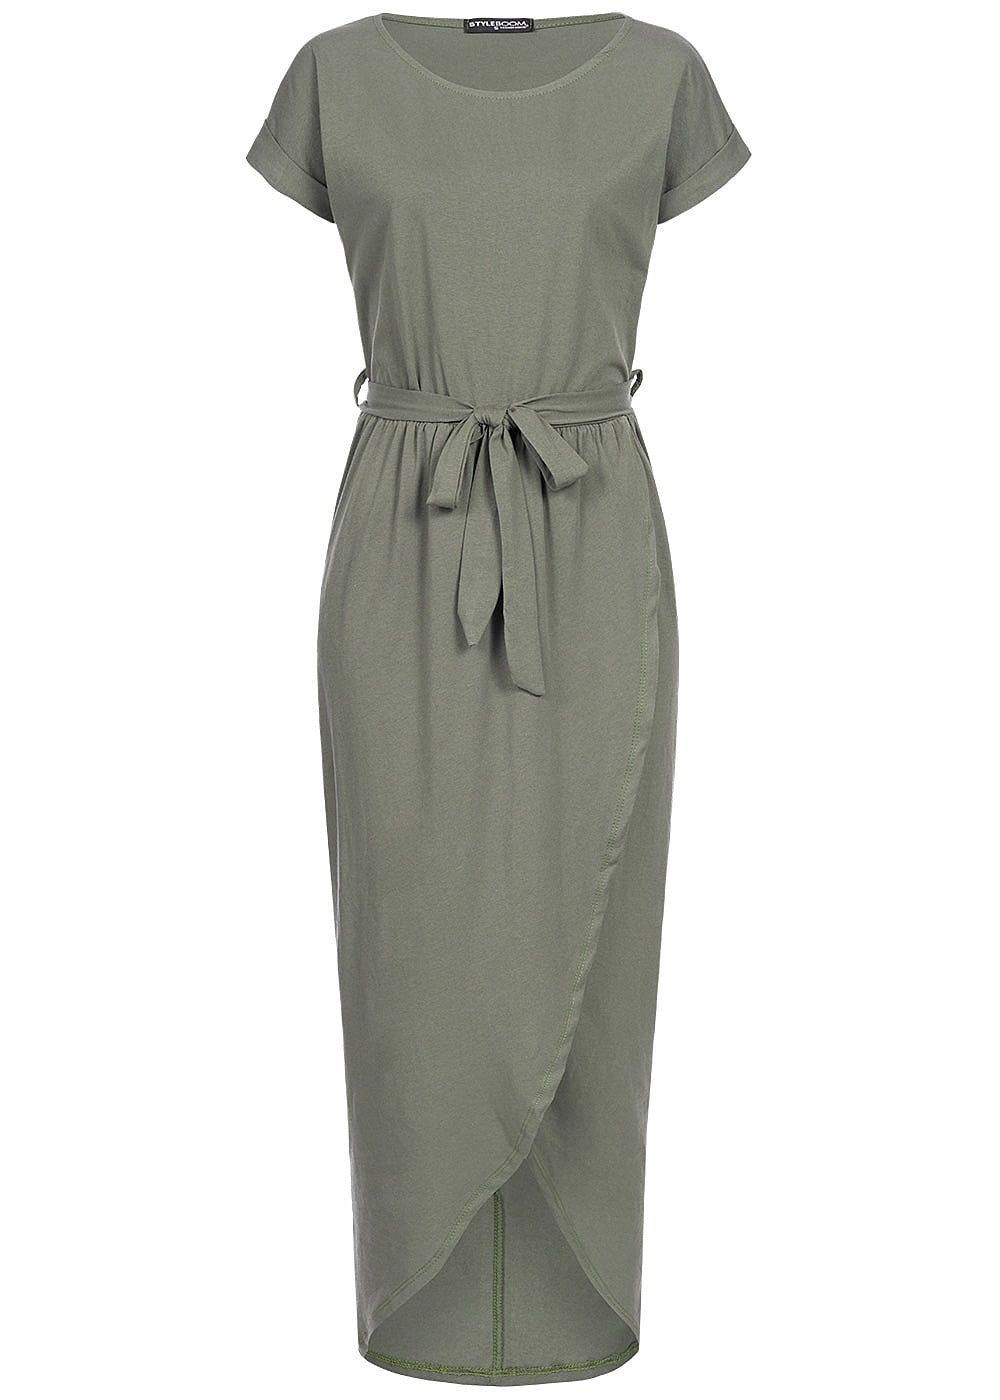 Styleboom Fashion Damen Long Wrap Belt Dress military grün - Art.-Nr.: 19036240